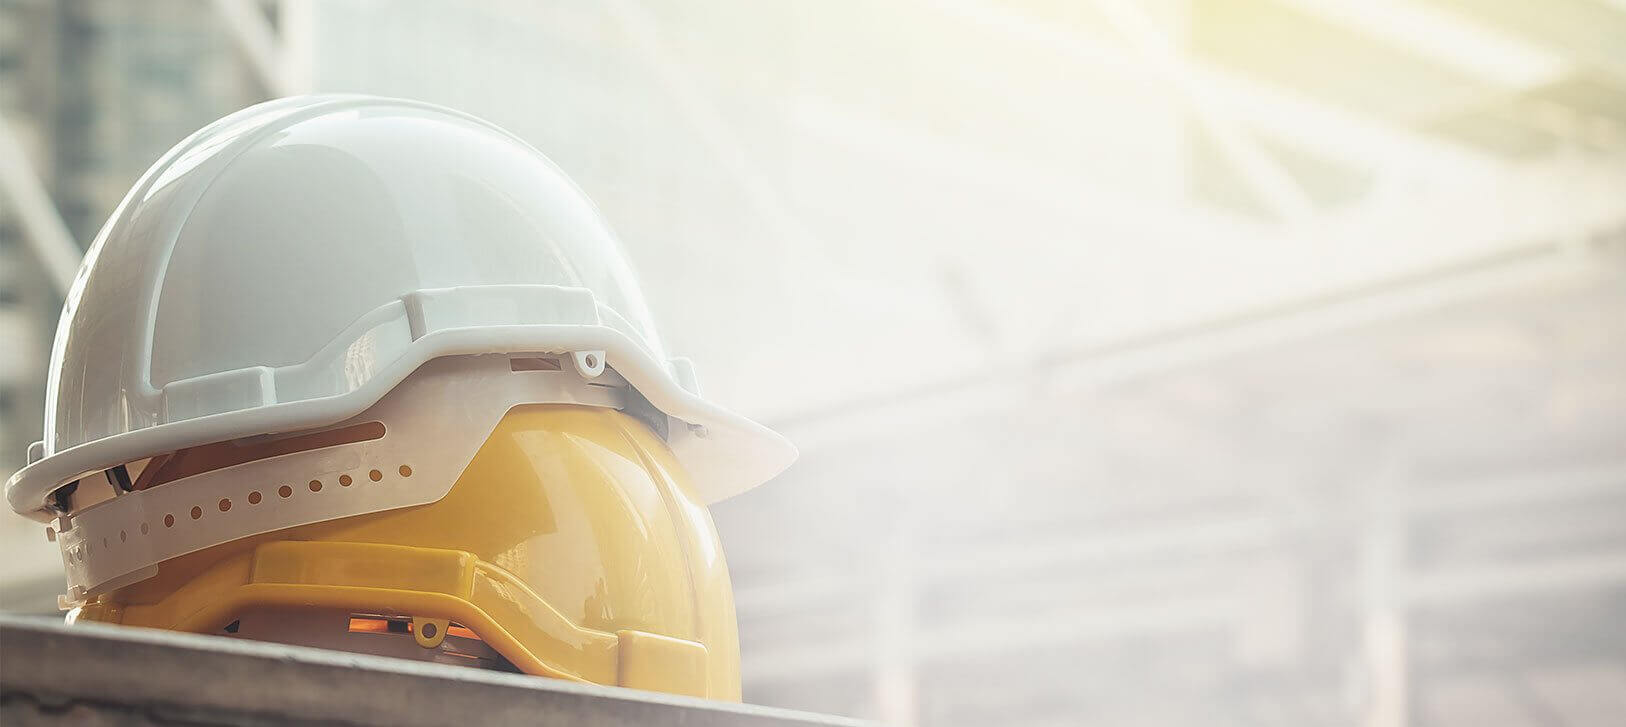 The #1 Affordable Contractors Insurance